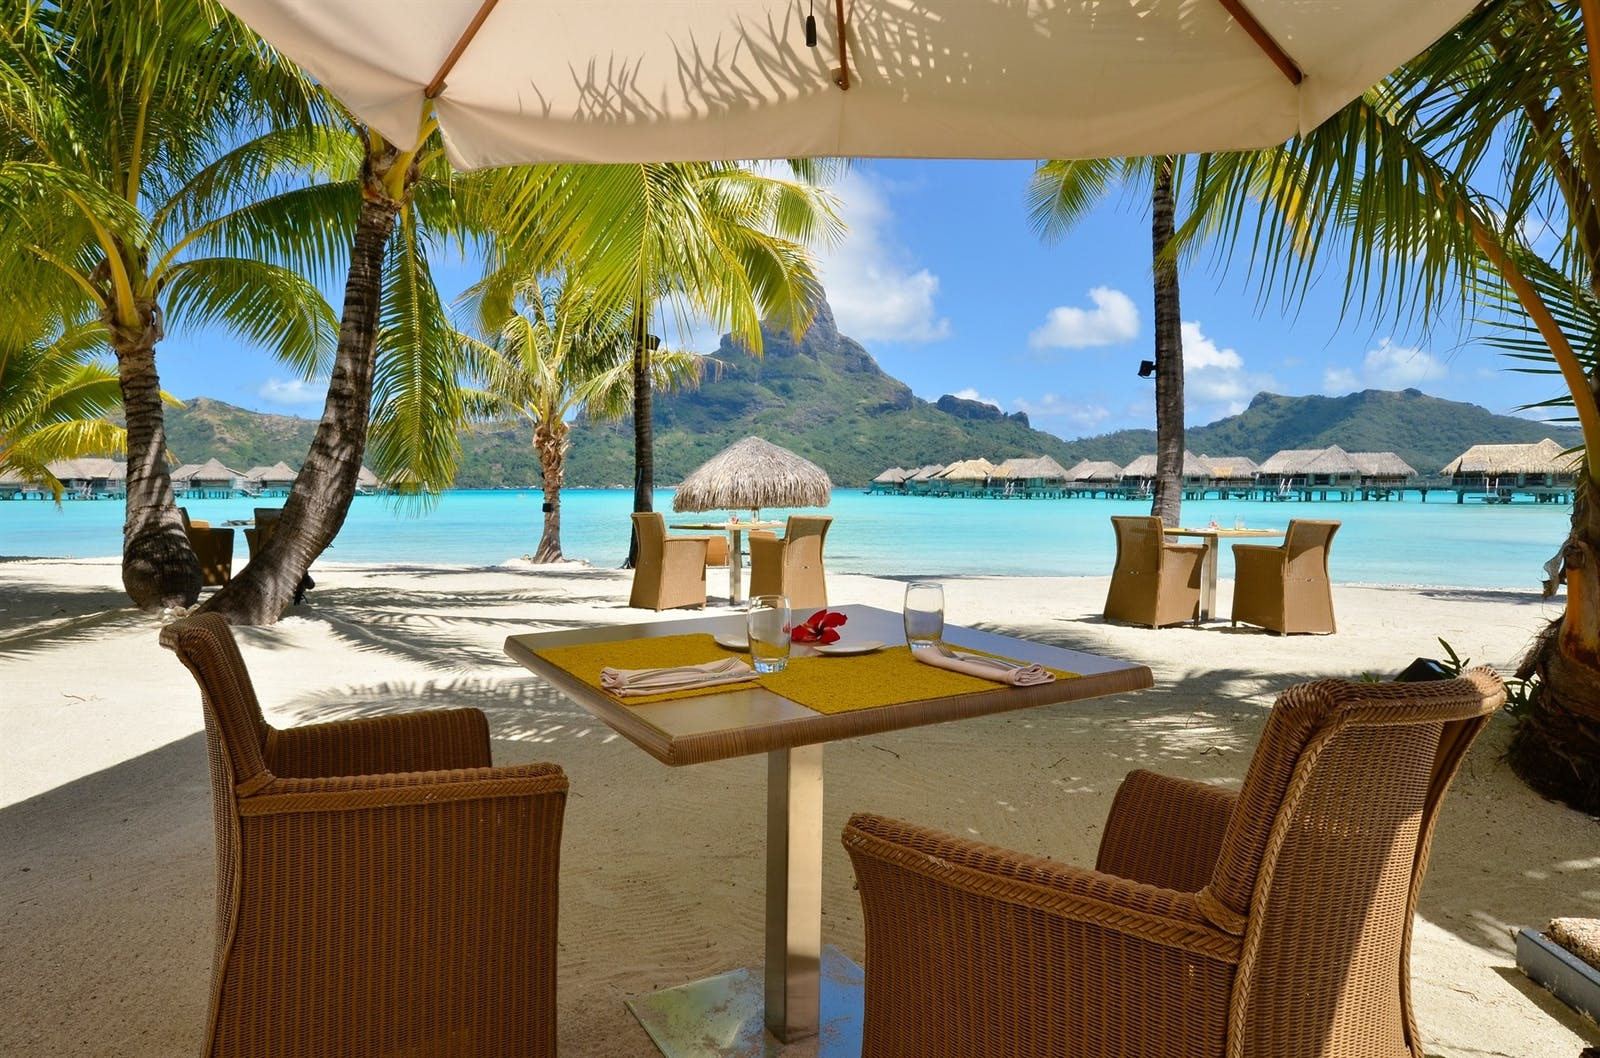 Dining Area at InterContinental Bora Bora Resort & Thalasso Spa, French Polynesia